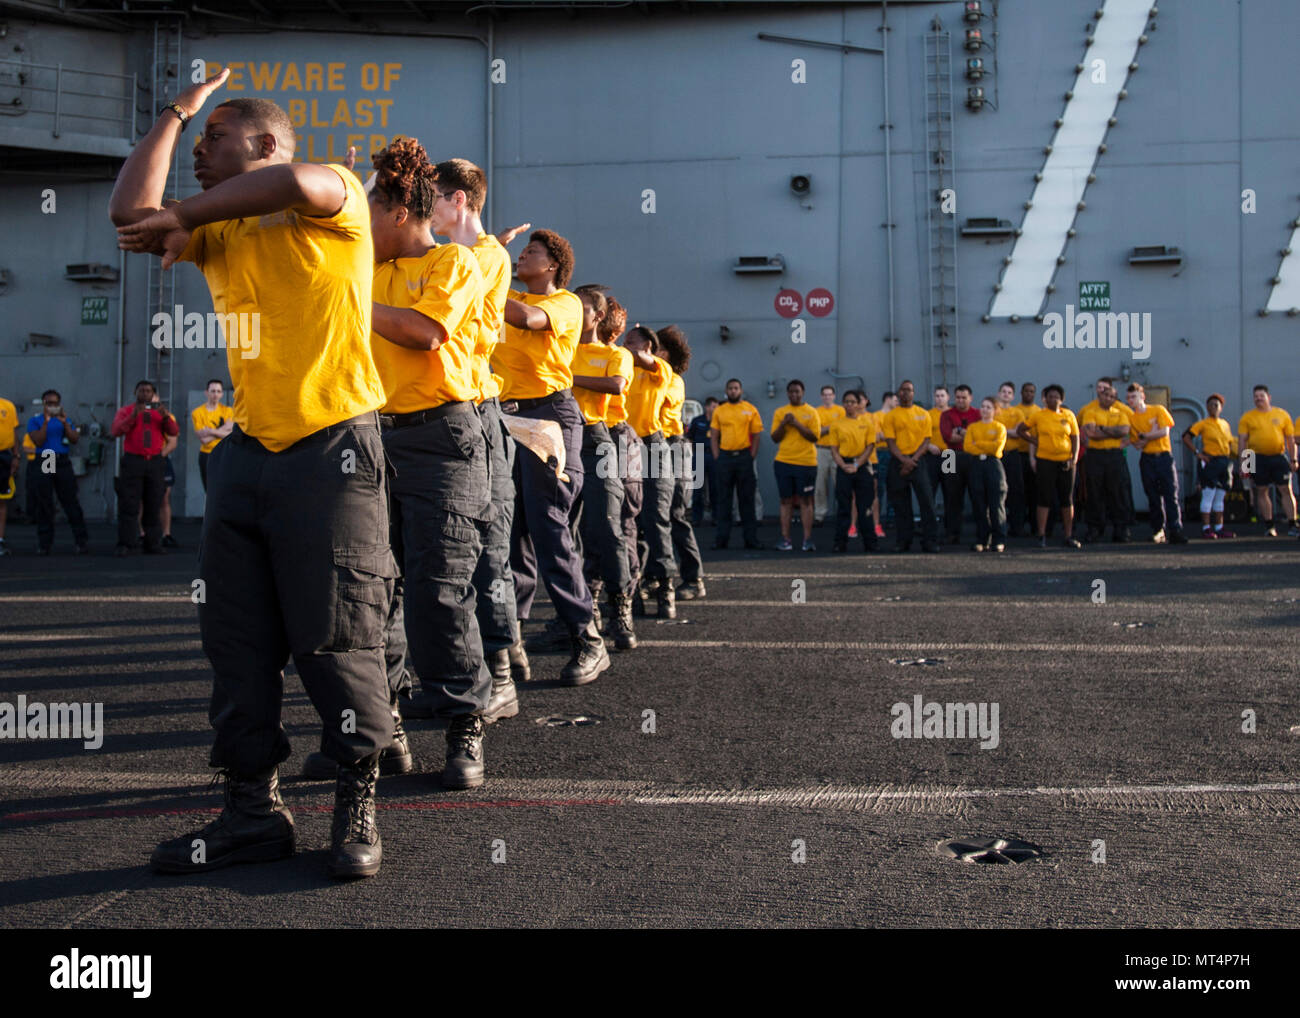 170722-N-ME396-137 MEDITERRANEAN SEA (July 22, 2017) The 77 PSI step team performs before the Suicide Prevention and Awareness Month 5K run aboard the aircraft carrier USS George H.W. Bush (CVN 77). The ship and its carrier strike group are conducting naval operations in the U.S. 6th Fleet area of operations in support of U.S. national security interests in Europe and Africa. (U.S. Navy photo by Mass Communication Specialist 3rd Class Tristan B. Lotz/Released) - Stock Image